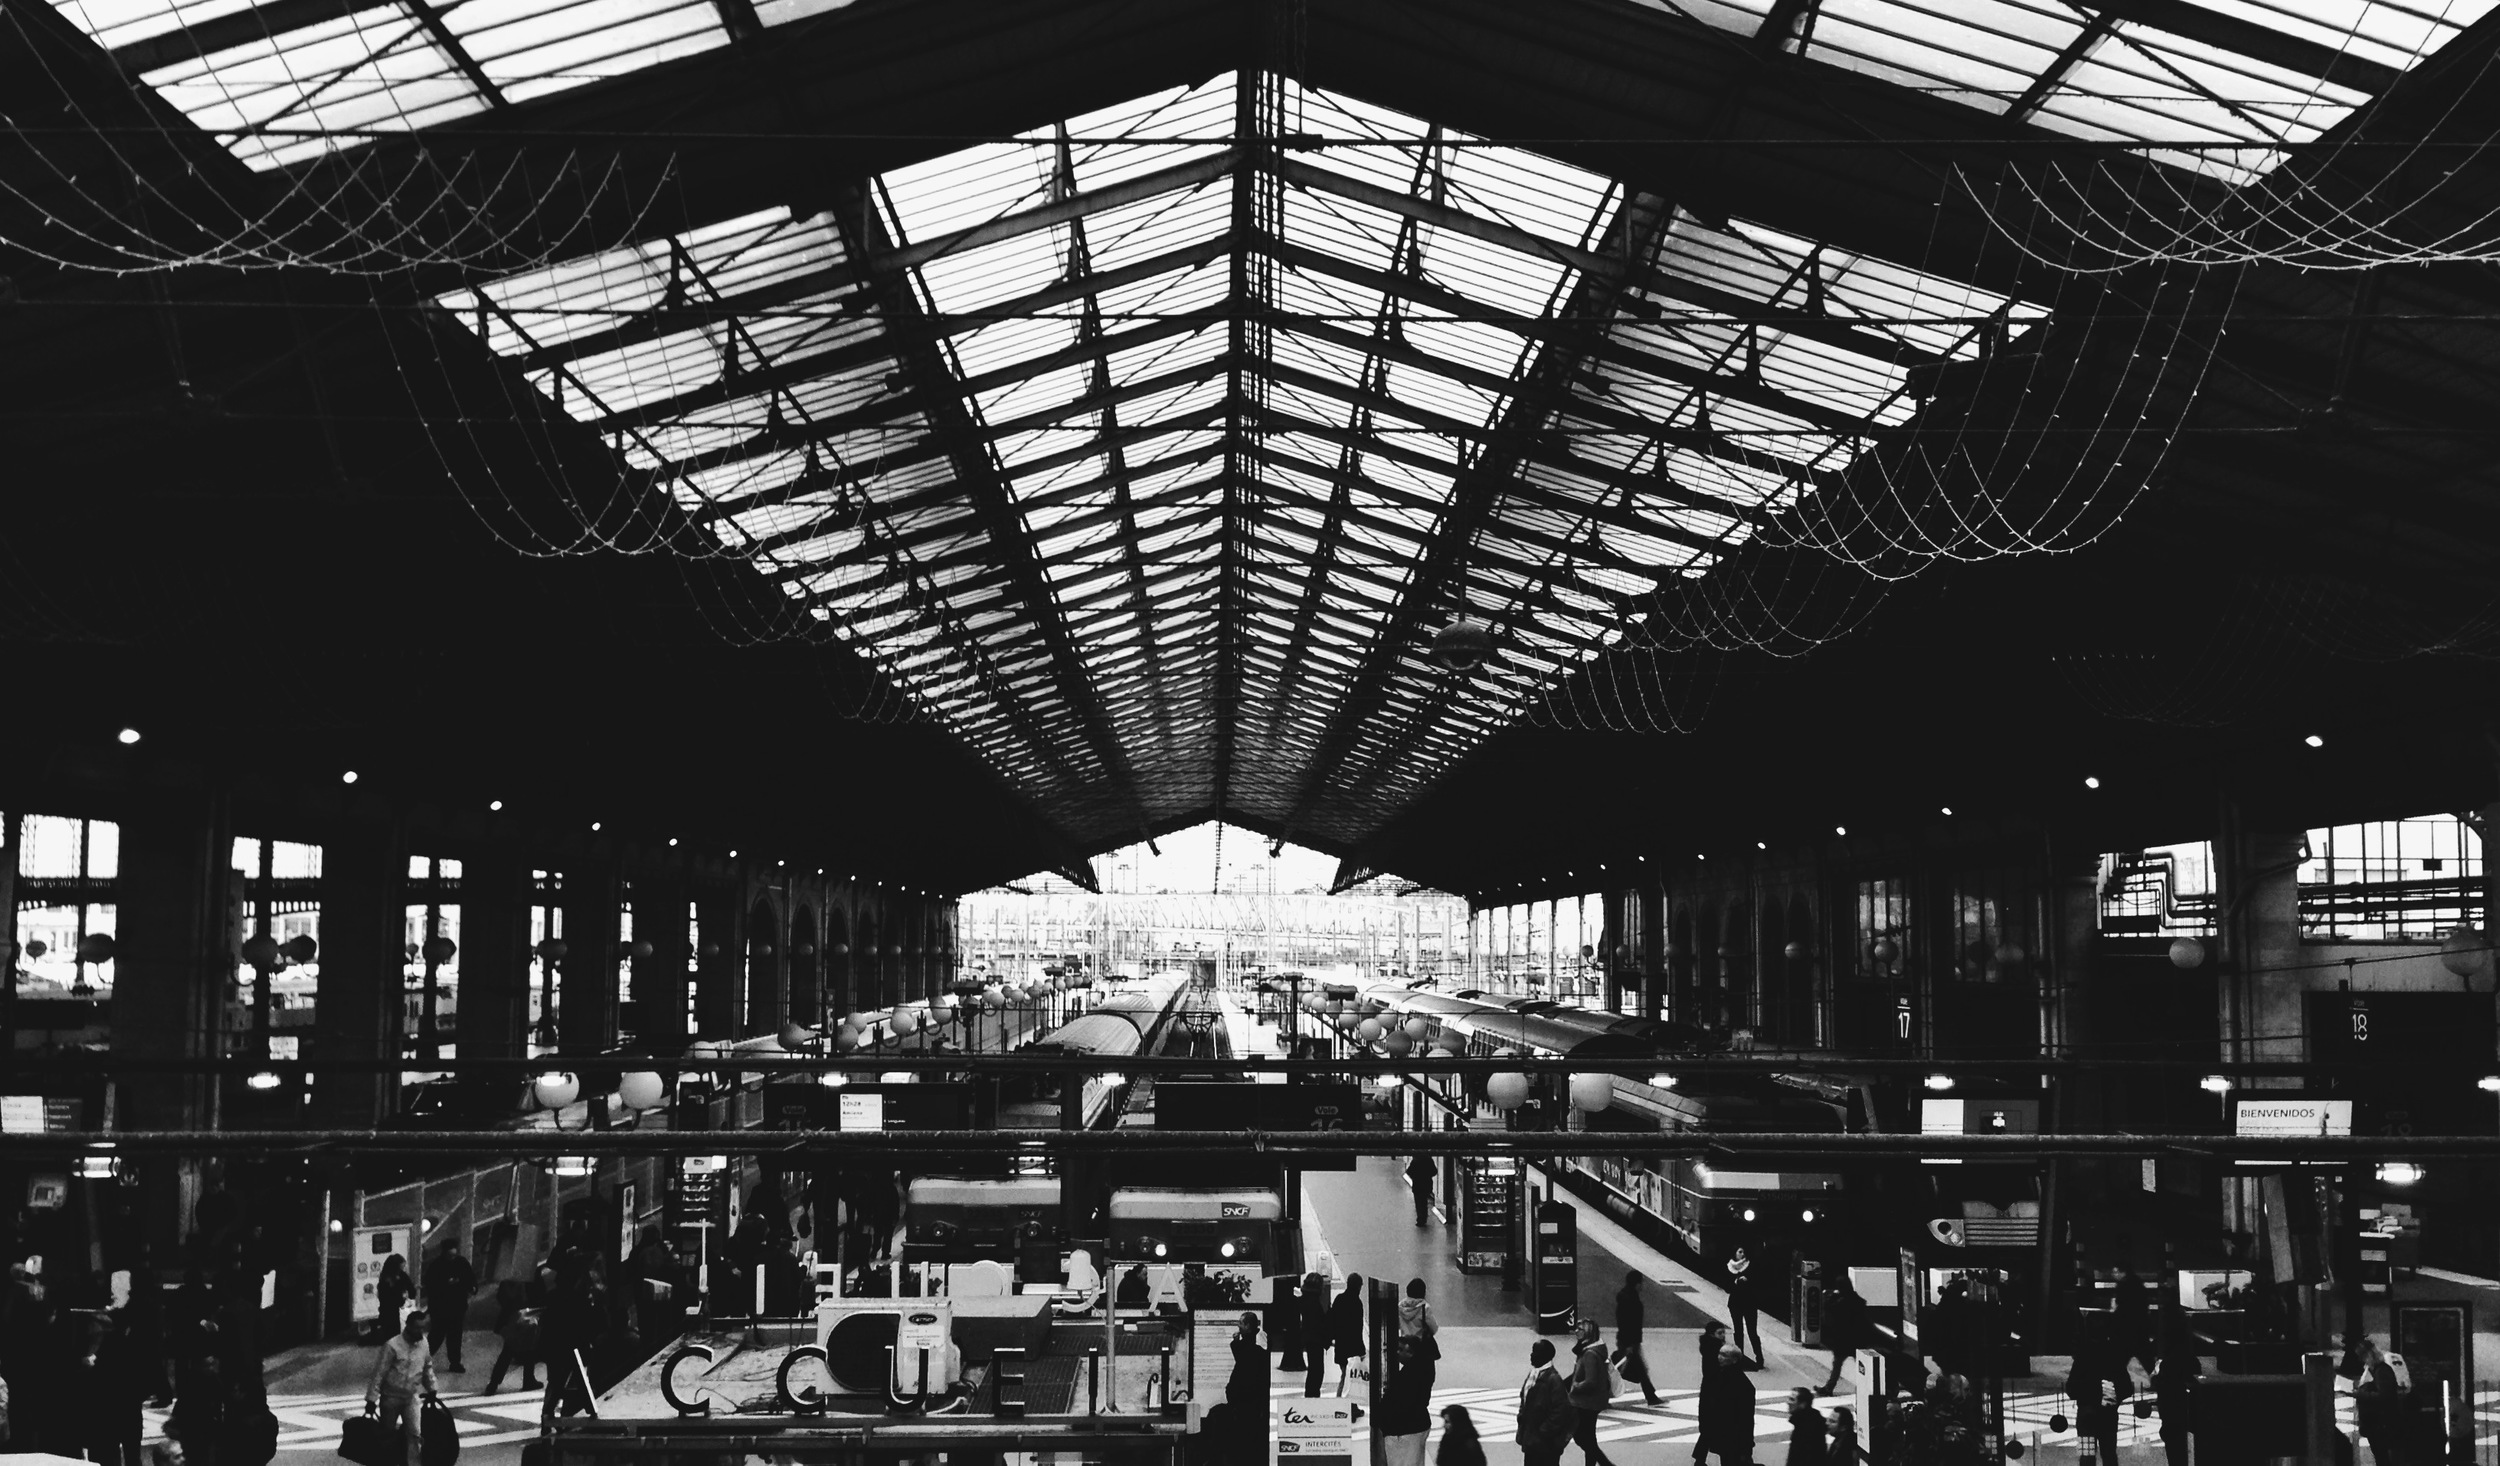 Gare du Nord, Paris, France